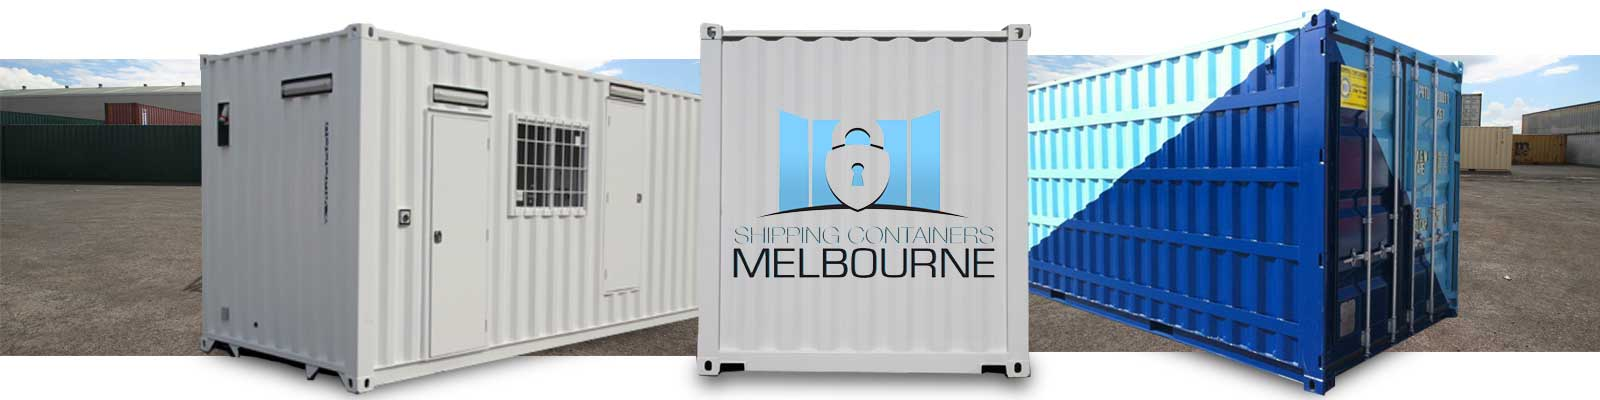 Shipping Containers Melbourne